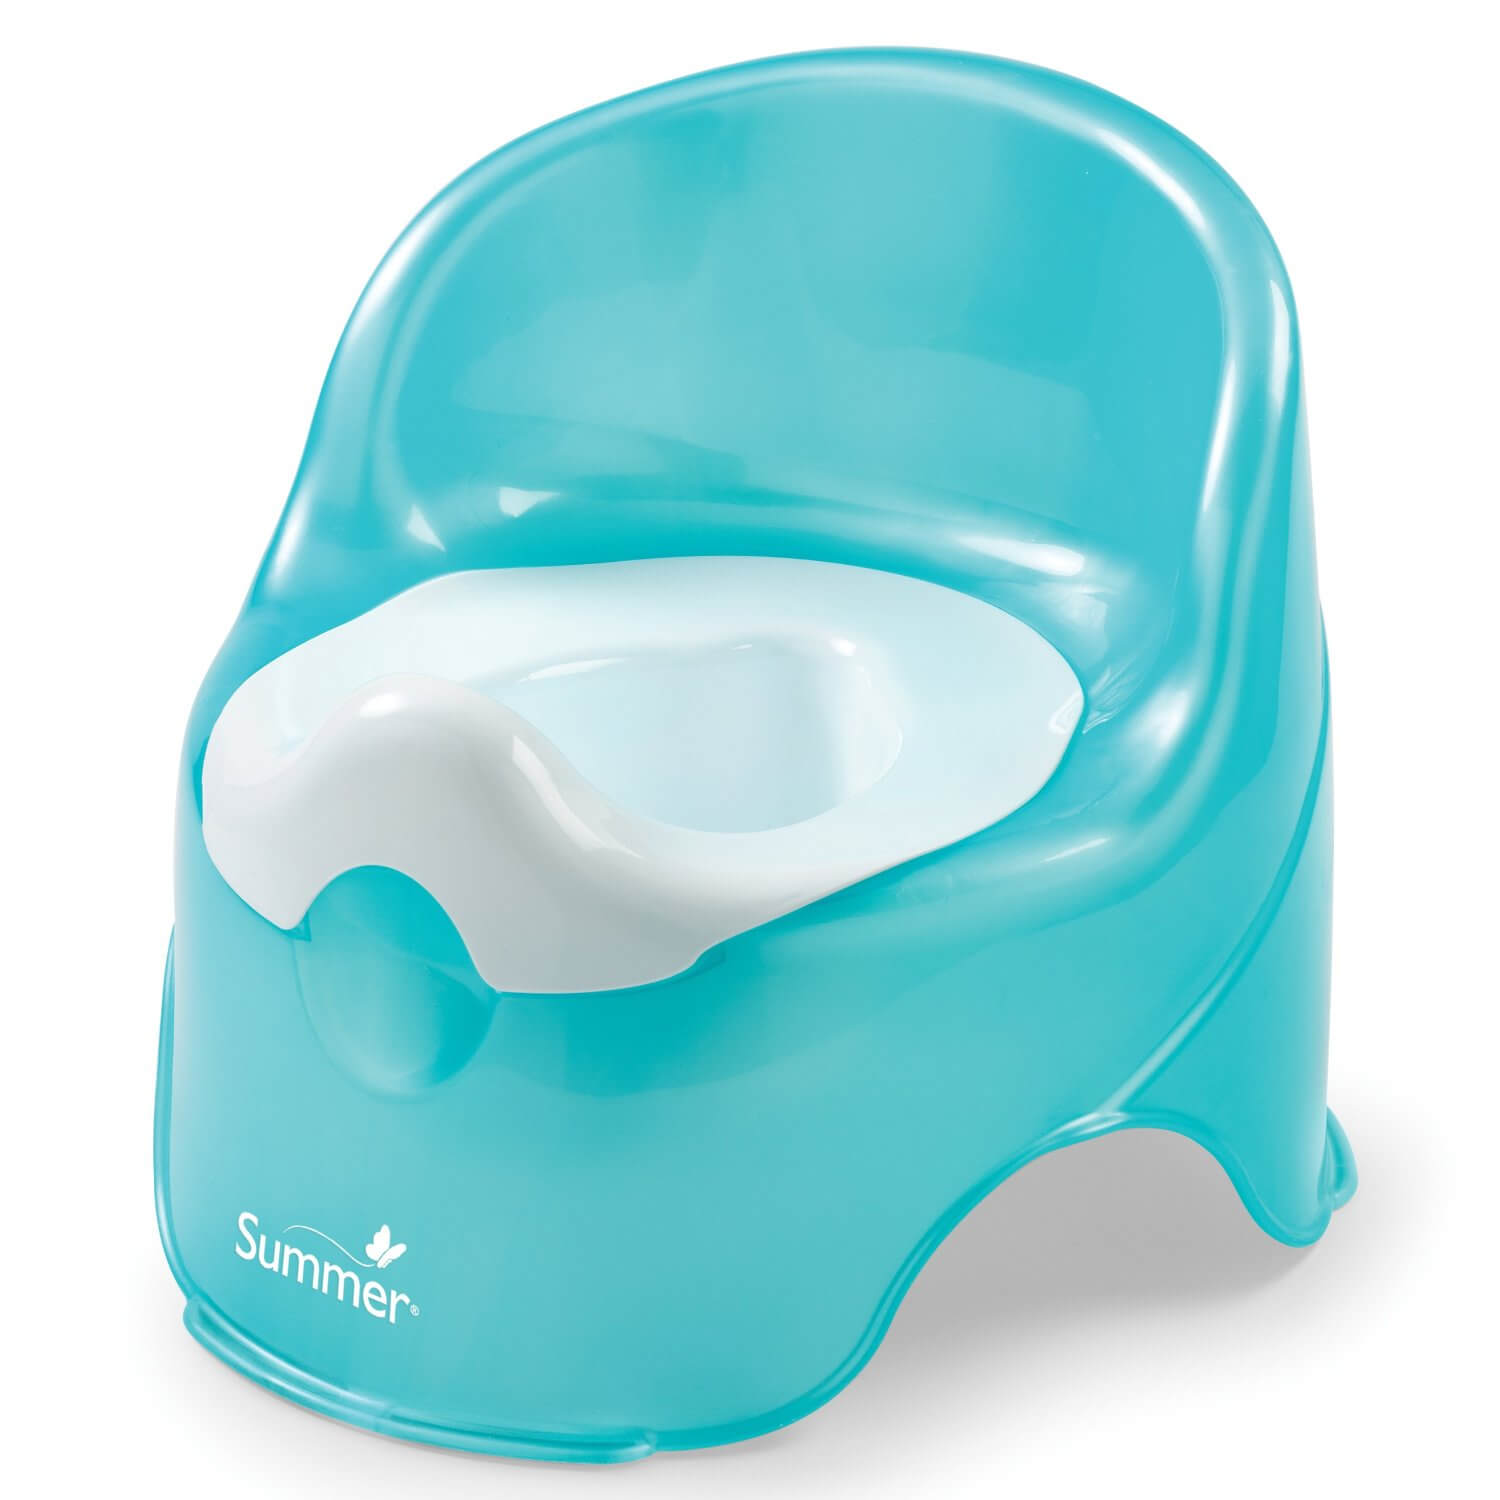 toddler-size-potty-chair